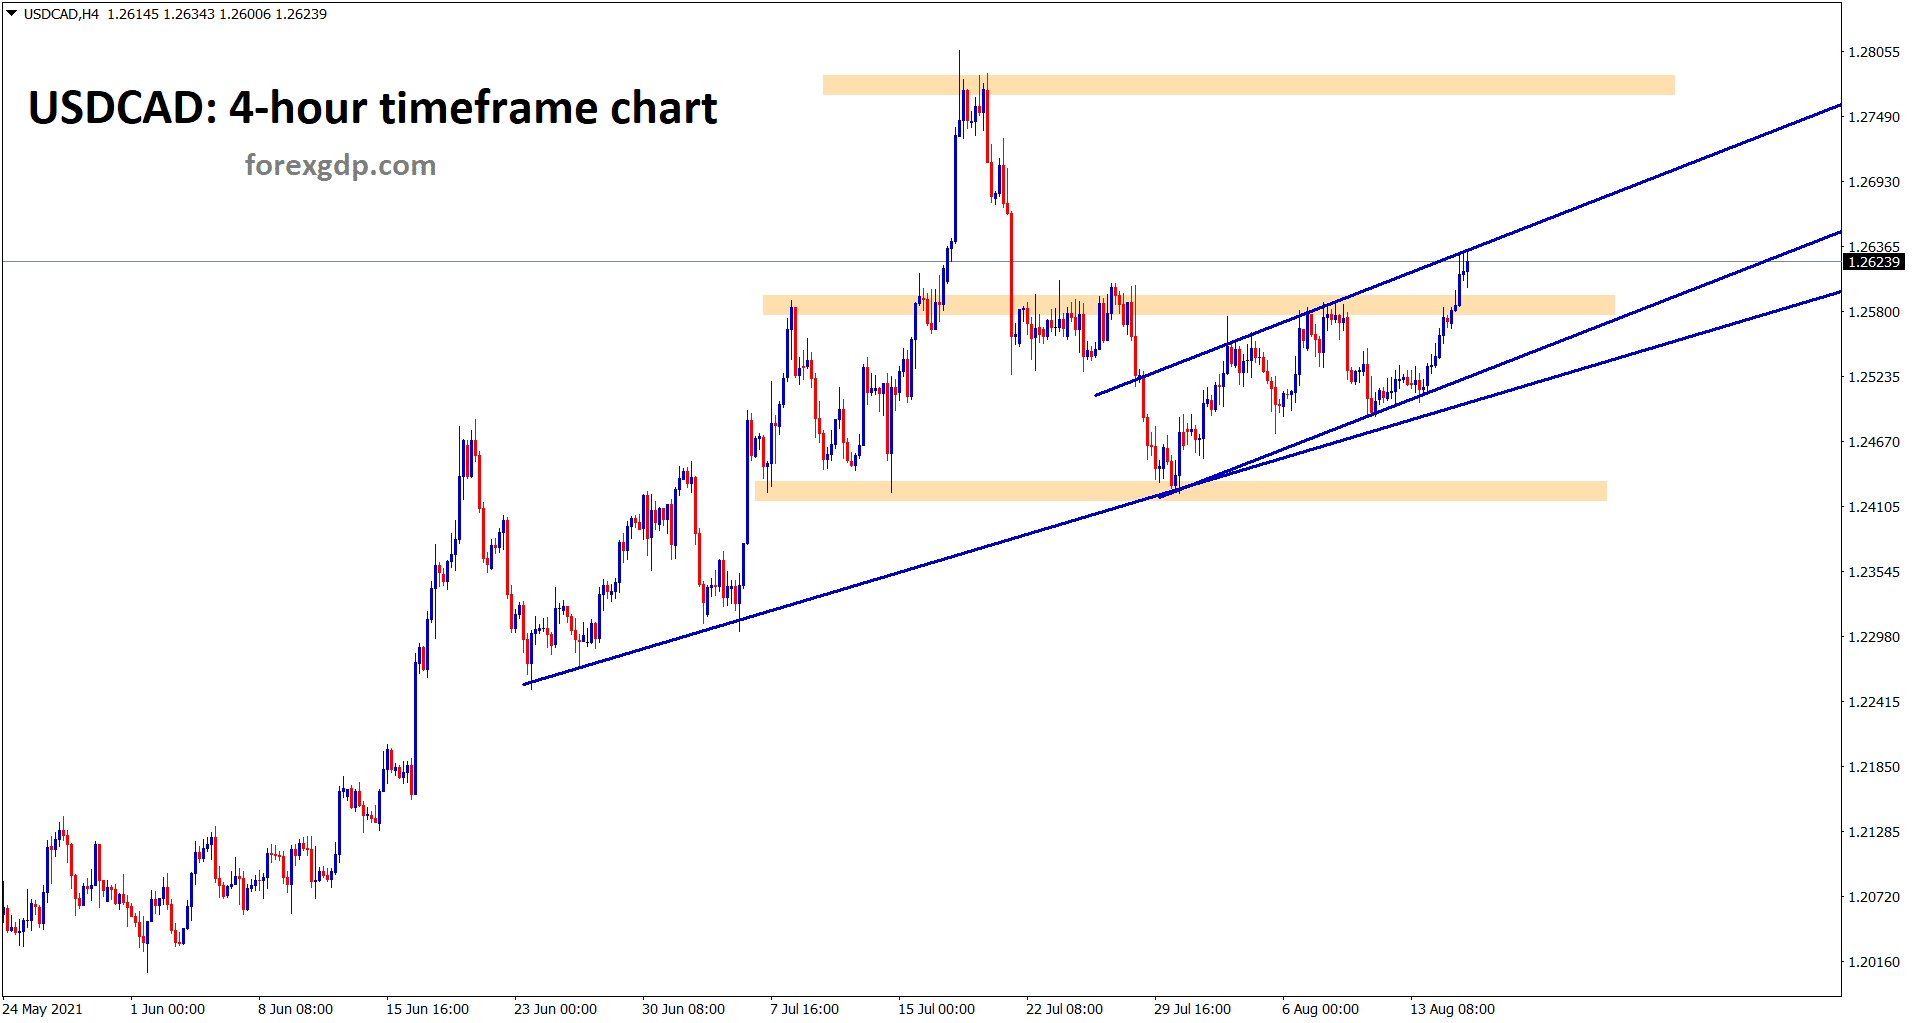 USDCAD breaks the horizontal resistance area and hits the higher high of the minor ascending channel